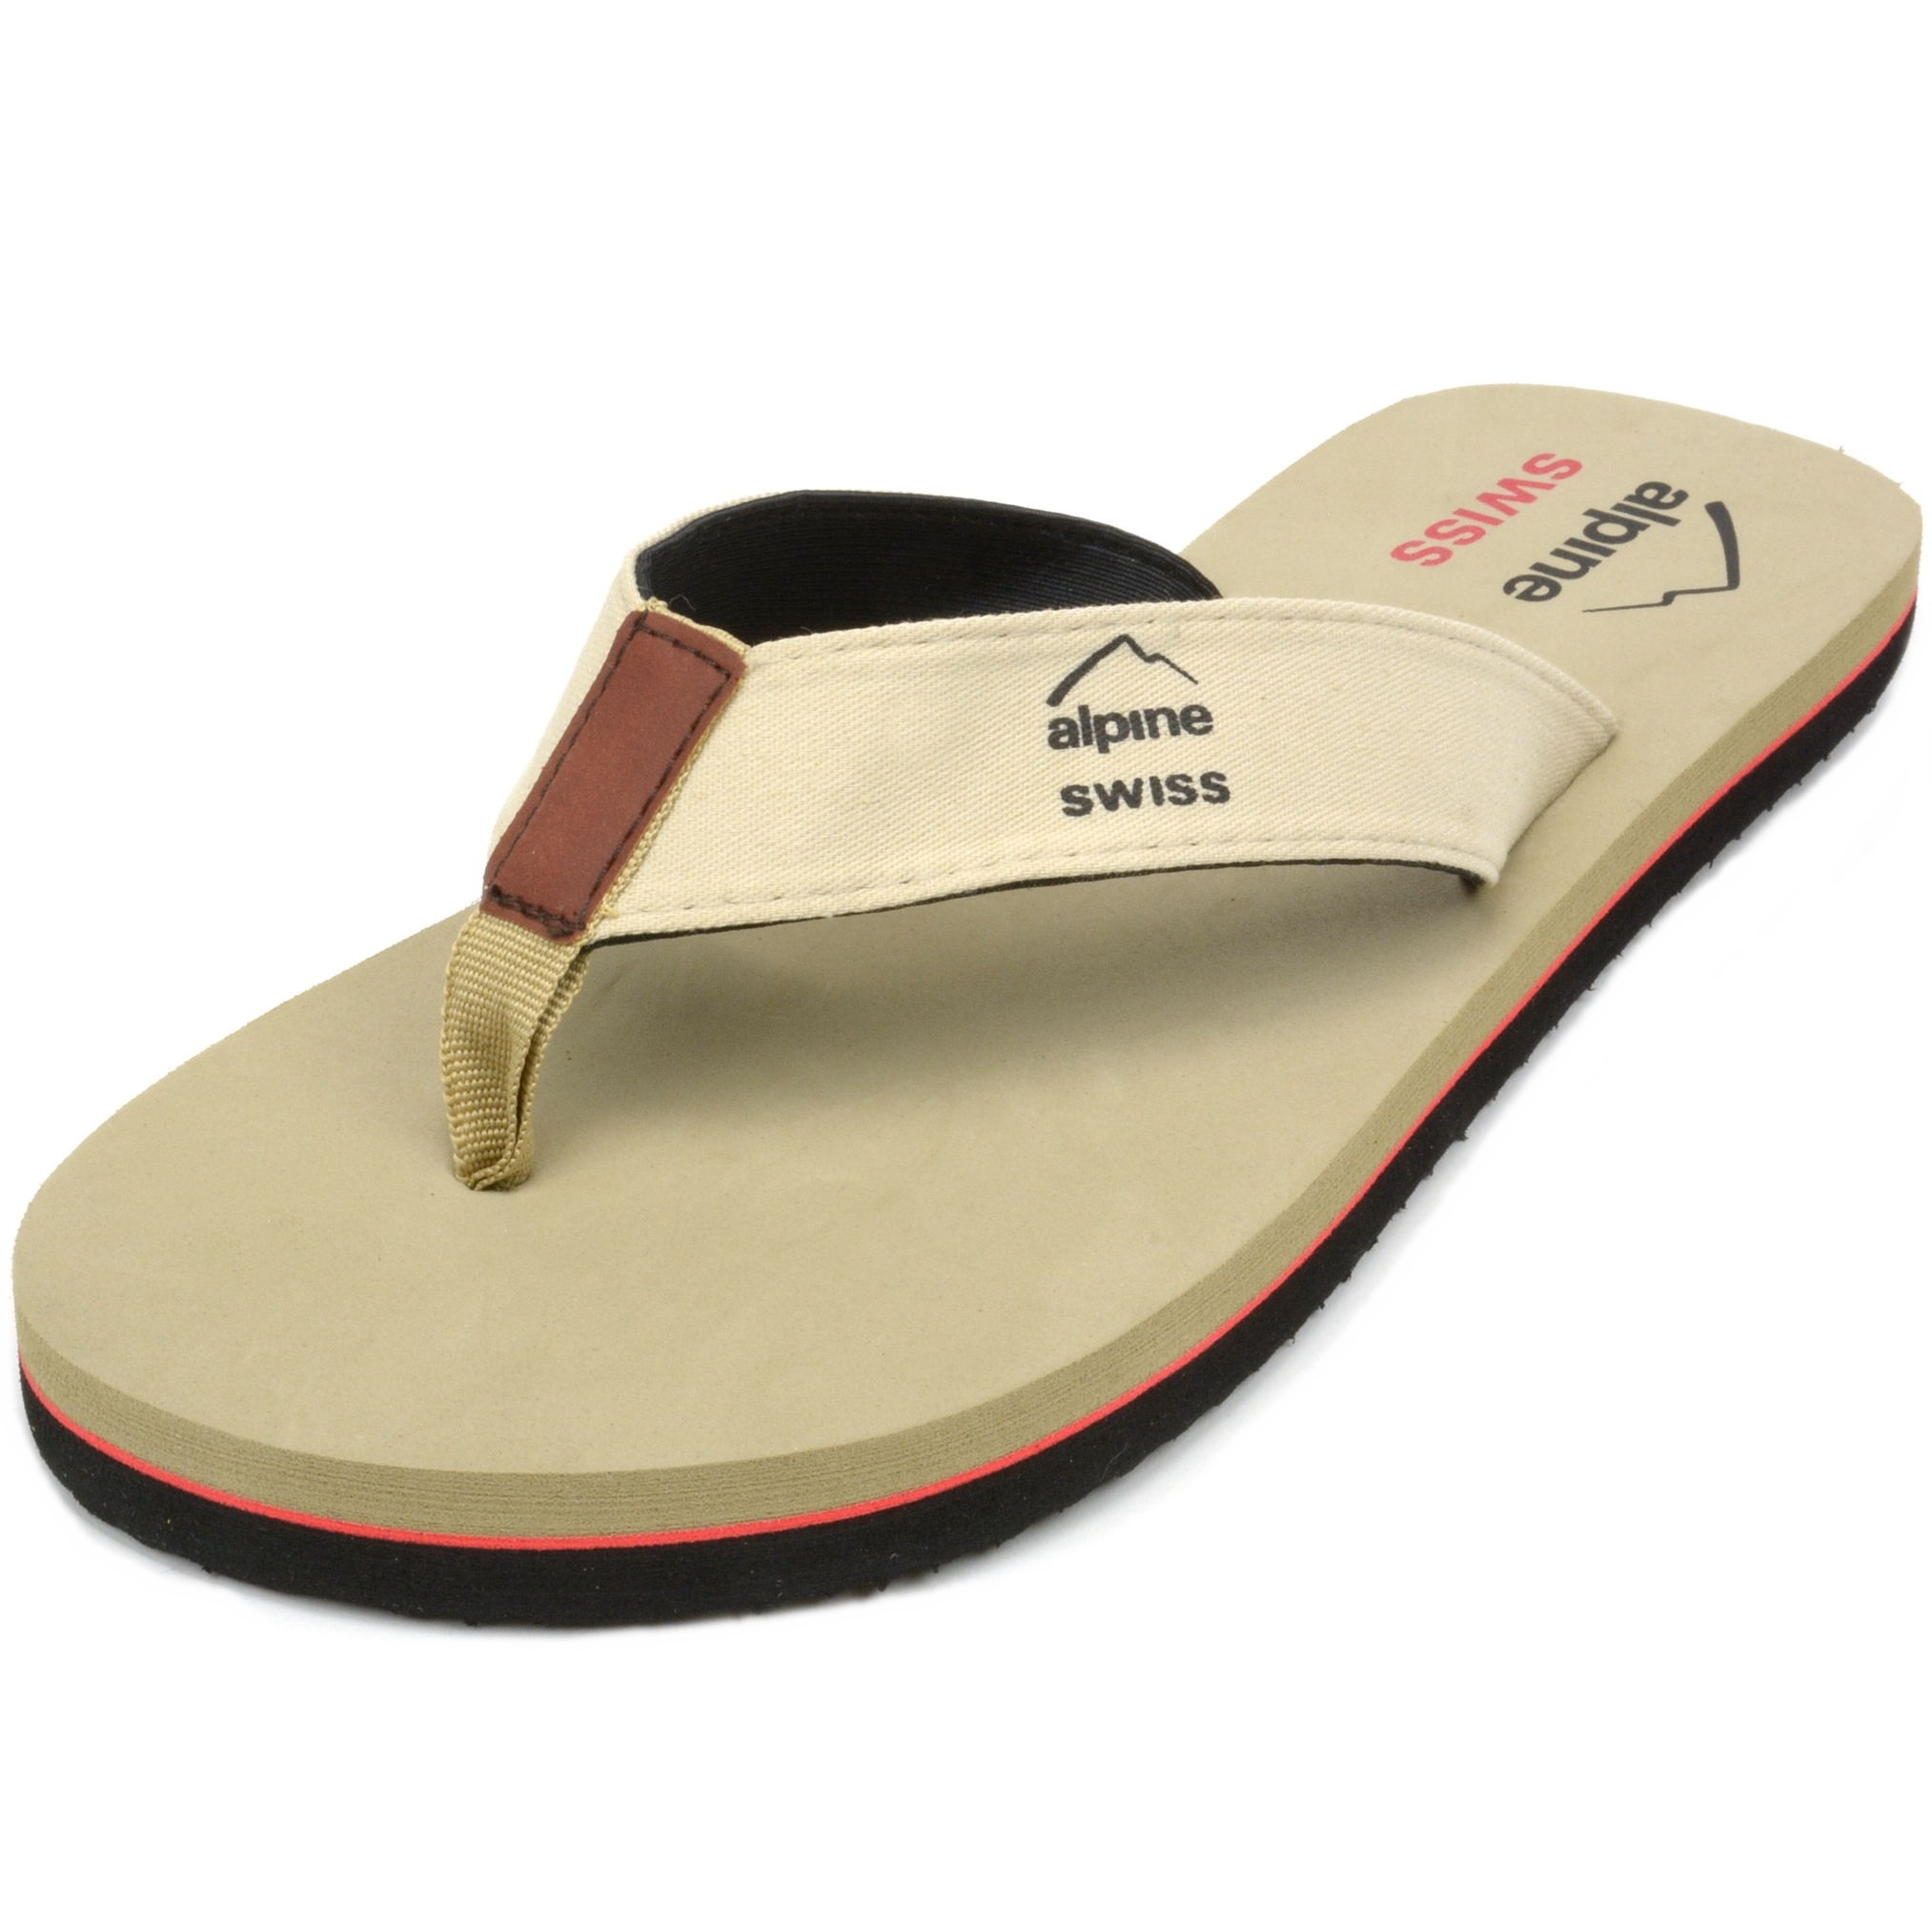 Alpine-Swiss-Mens-Flip-Flops-Beach-Sandals-Lightweight-EVA-Sole-Comfort-Thongs thumbnail 67